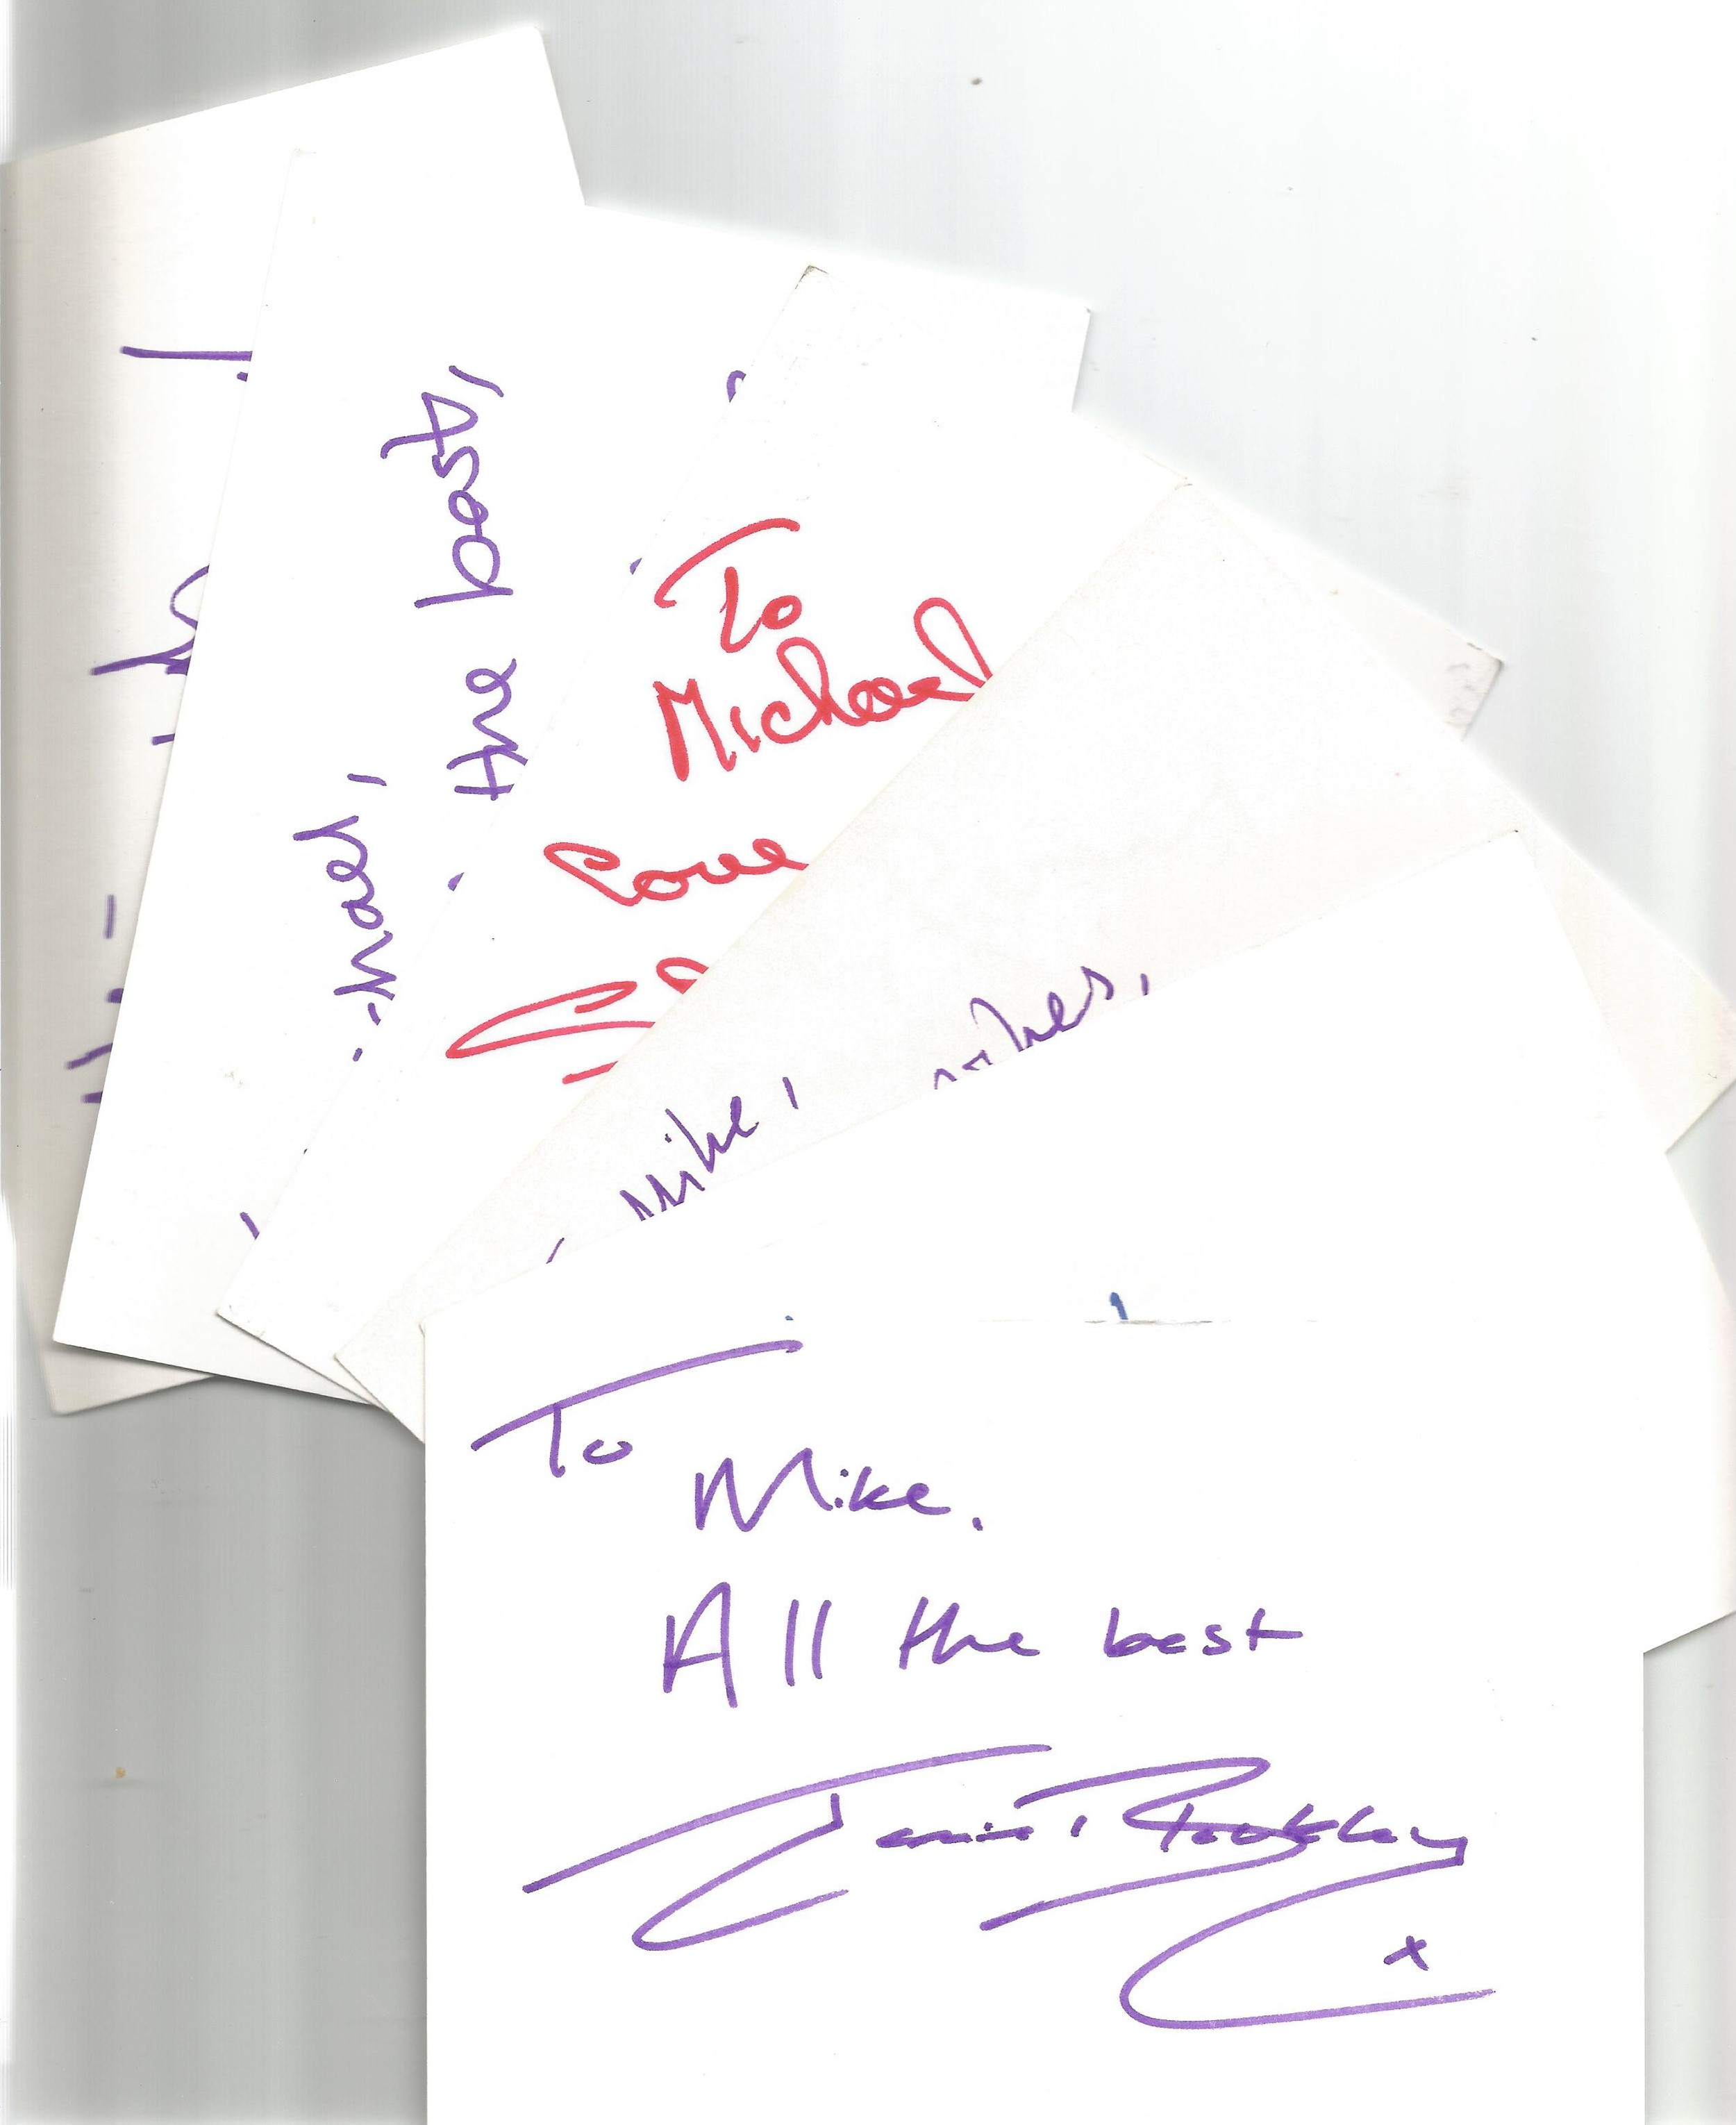 Bargain collection 9. 50 Actor and Actress signed cards from in person collector unsorted. Signed - Image 2 of 3